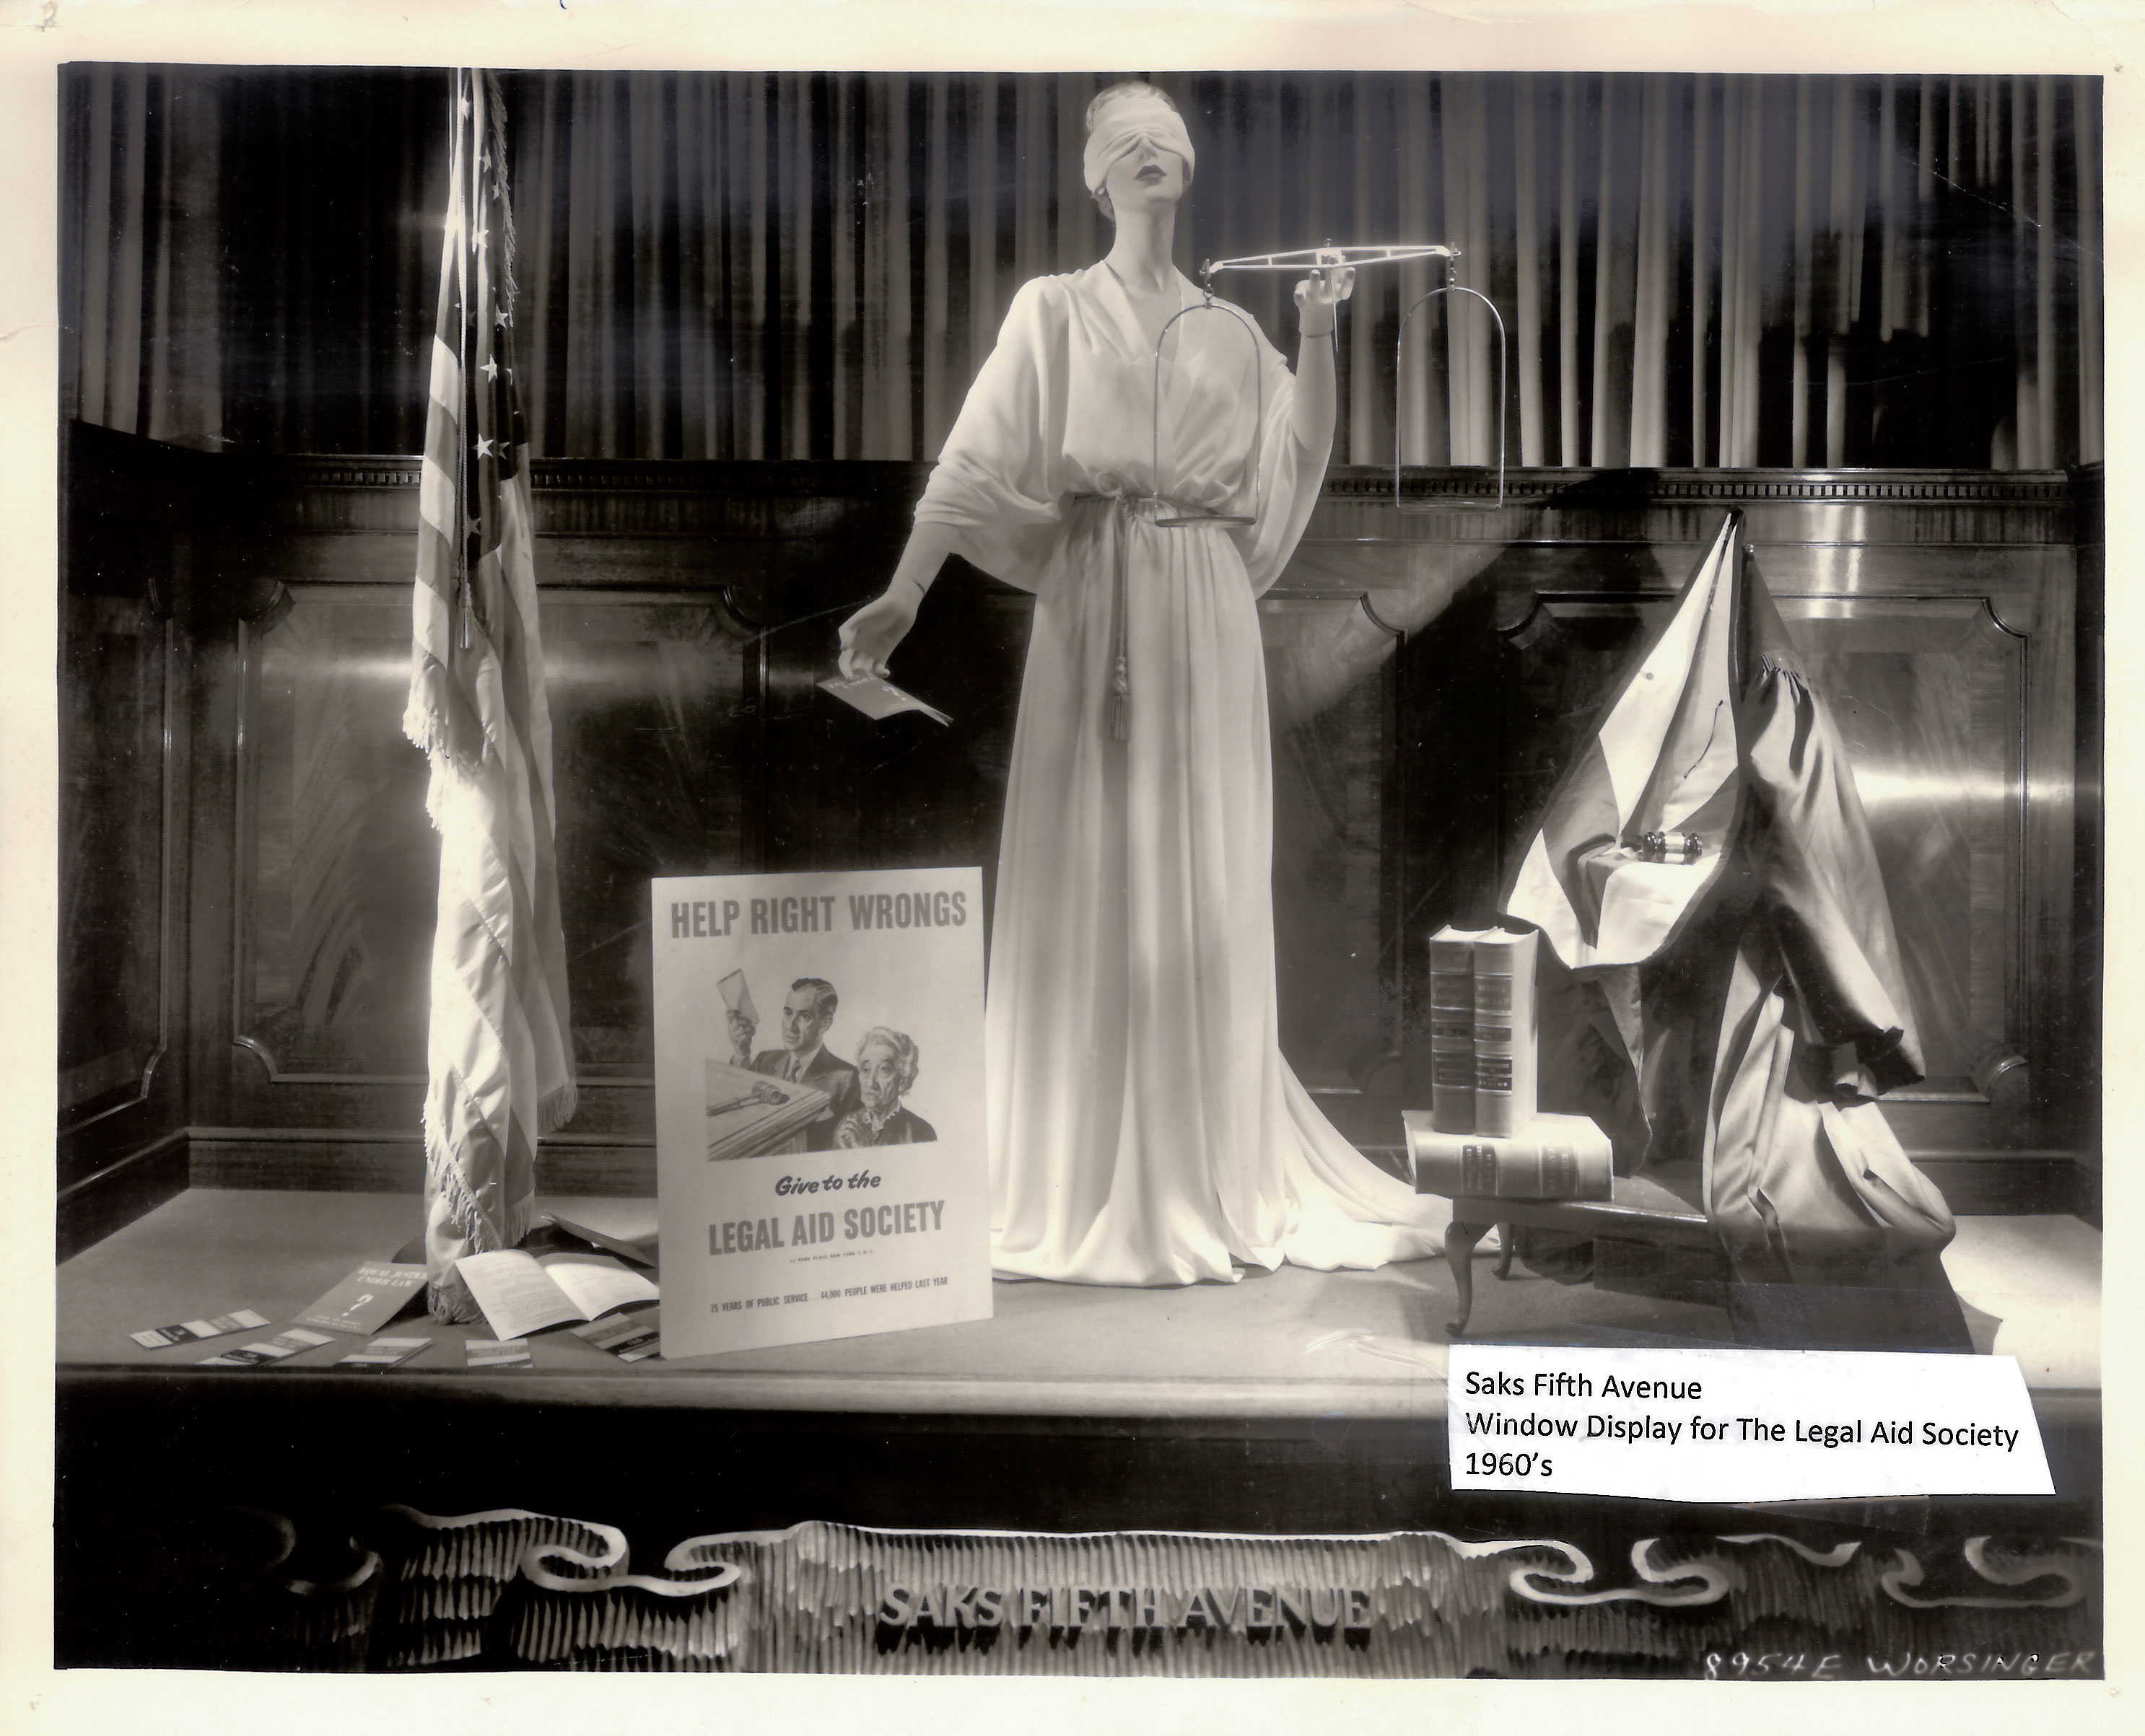 A Saks Fifth Avenue Window Display for The Legal Aid Society